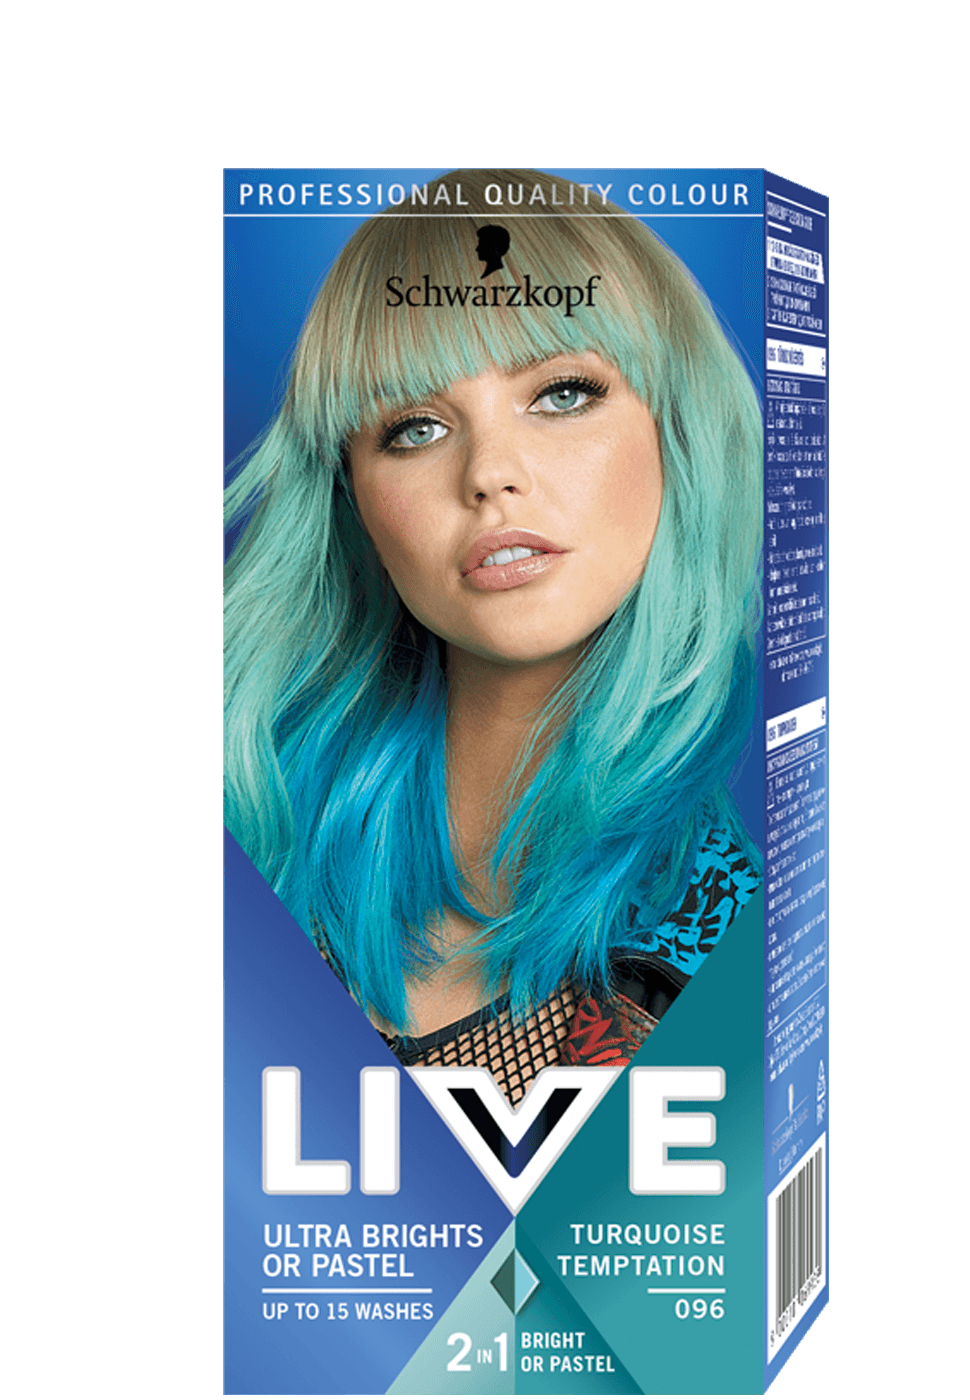 live_colour_uk_ultra_brights_096_turquoise_temptation_970x1400